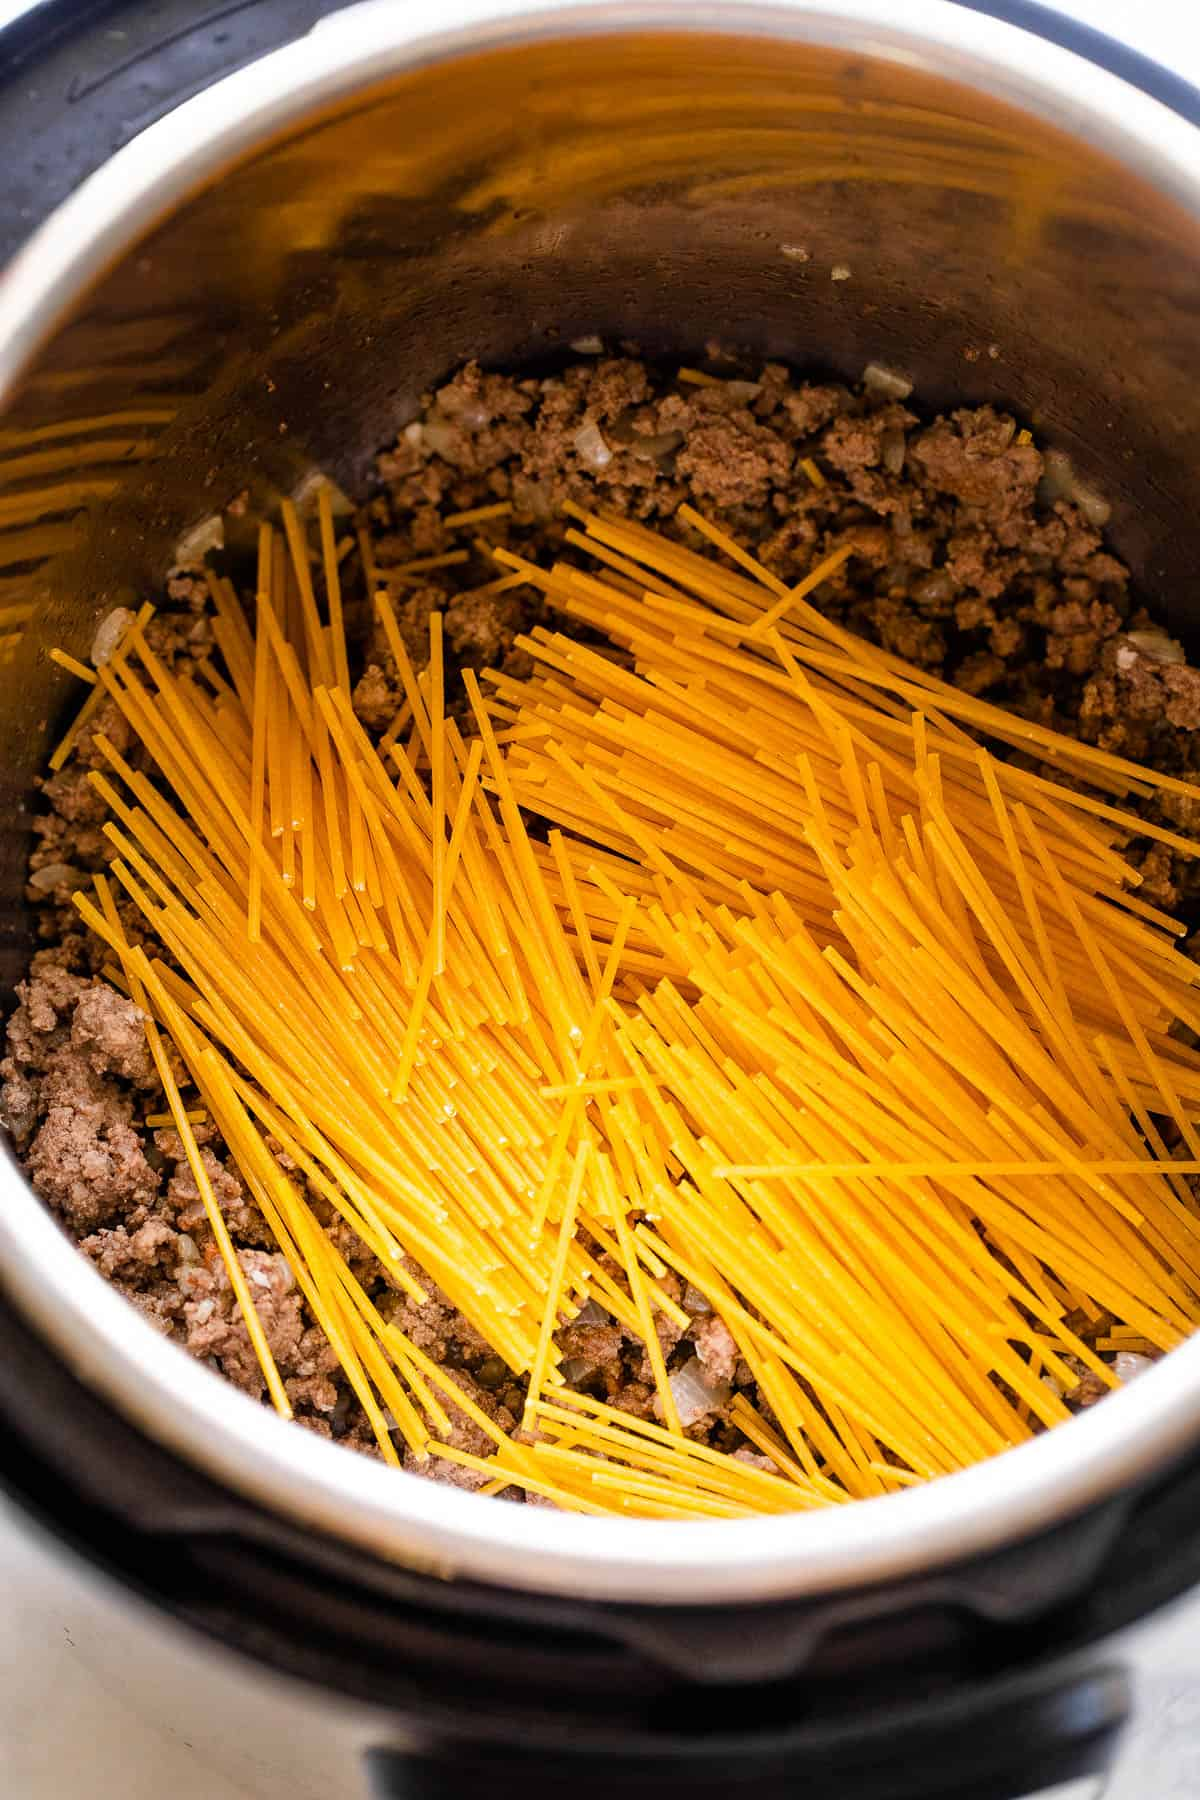 dry spaghetti set over ground beef in the instant pot